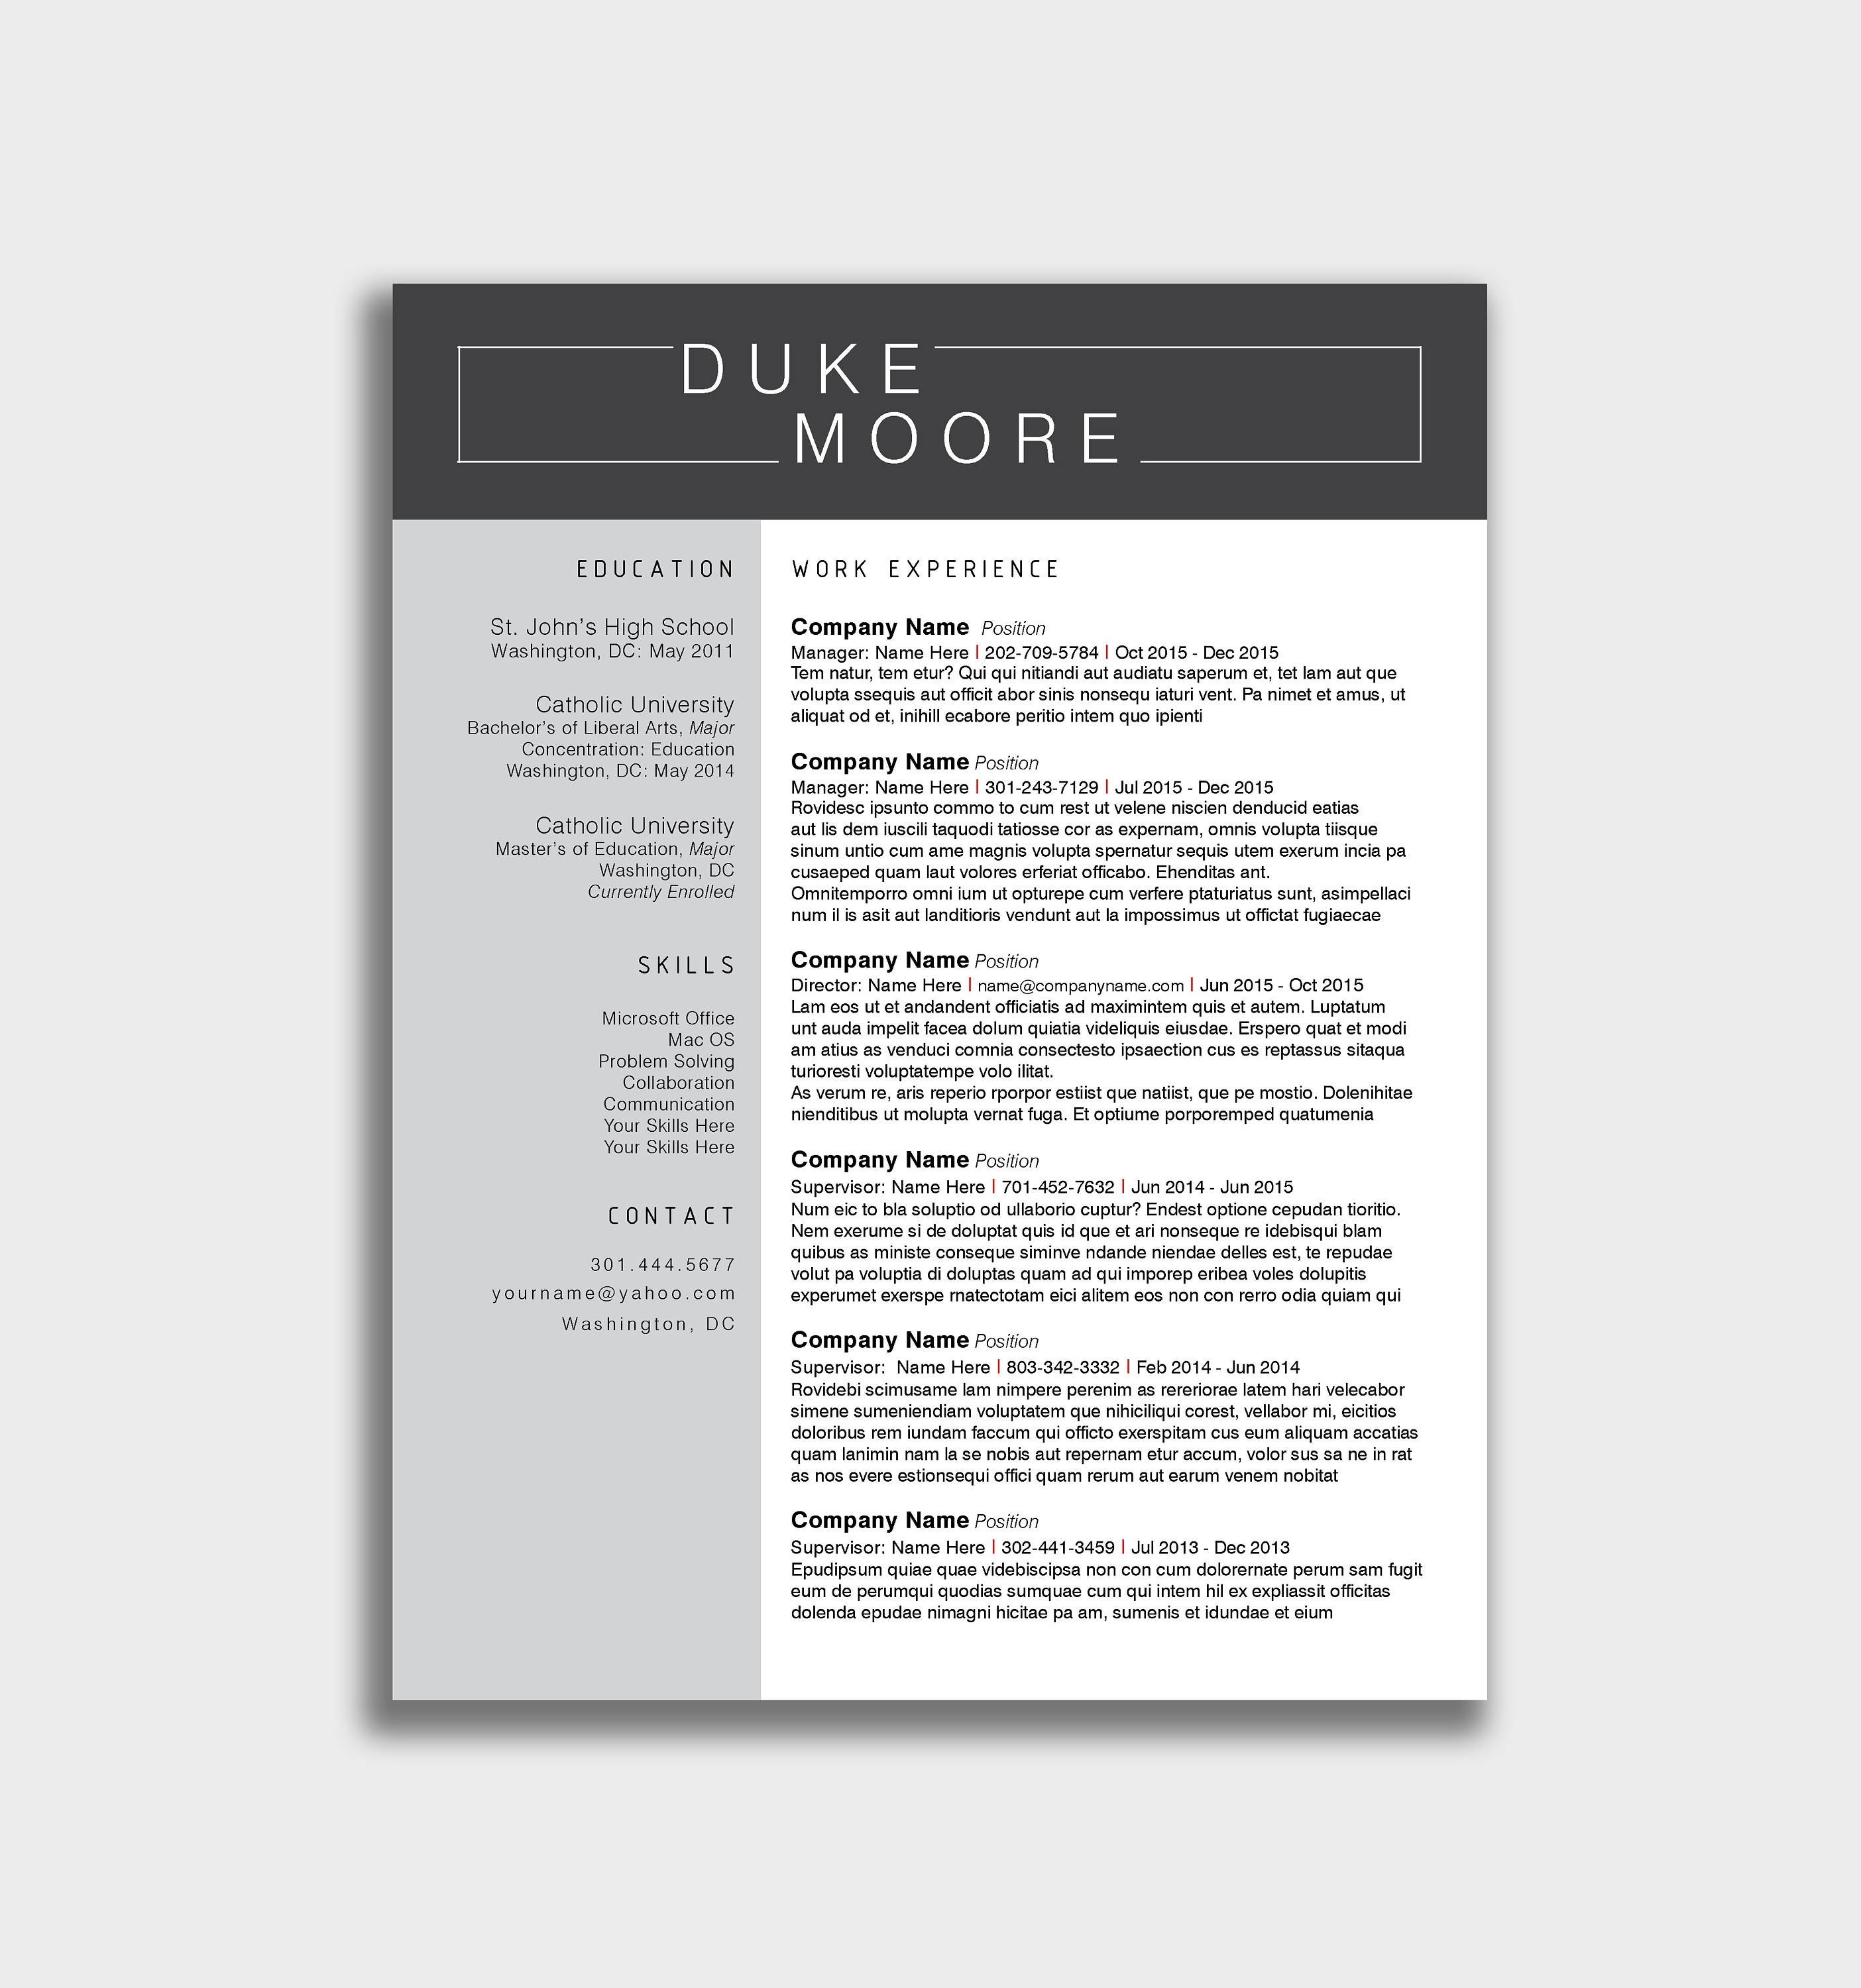 Mechanical Engineering Resume Templates - Mechanical Engineering Resume Templates